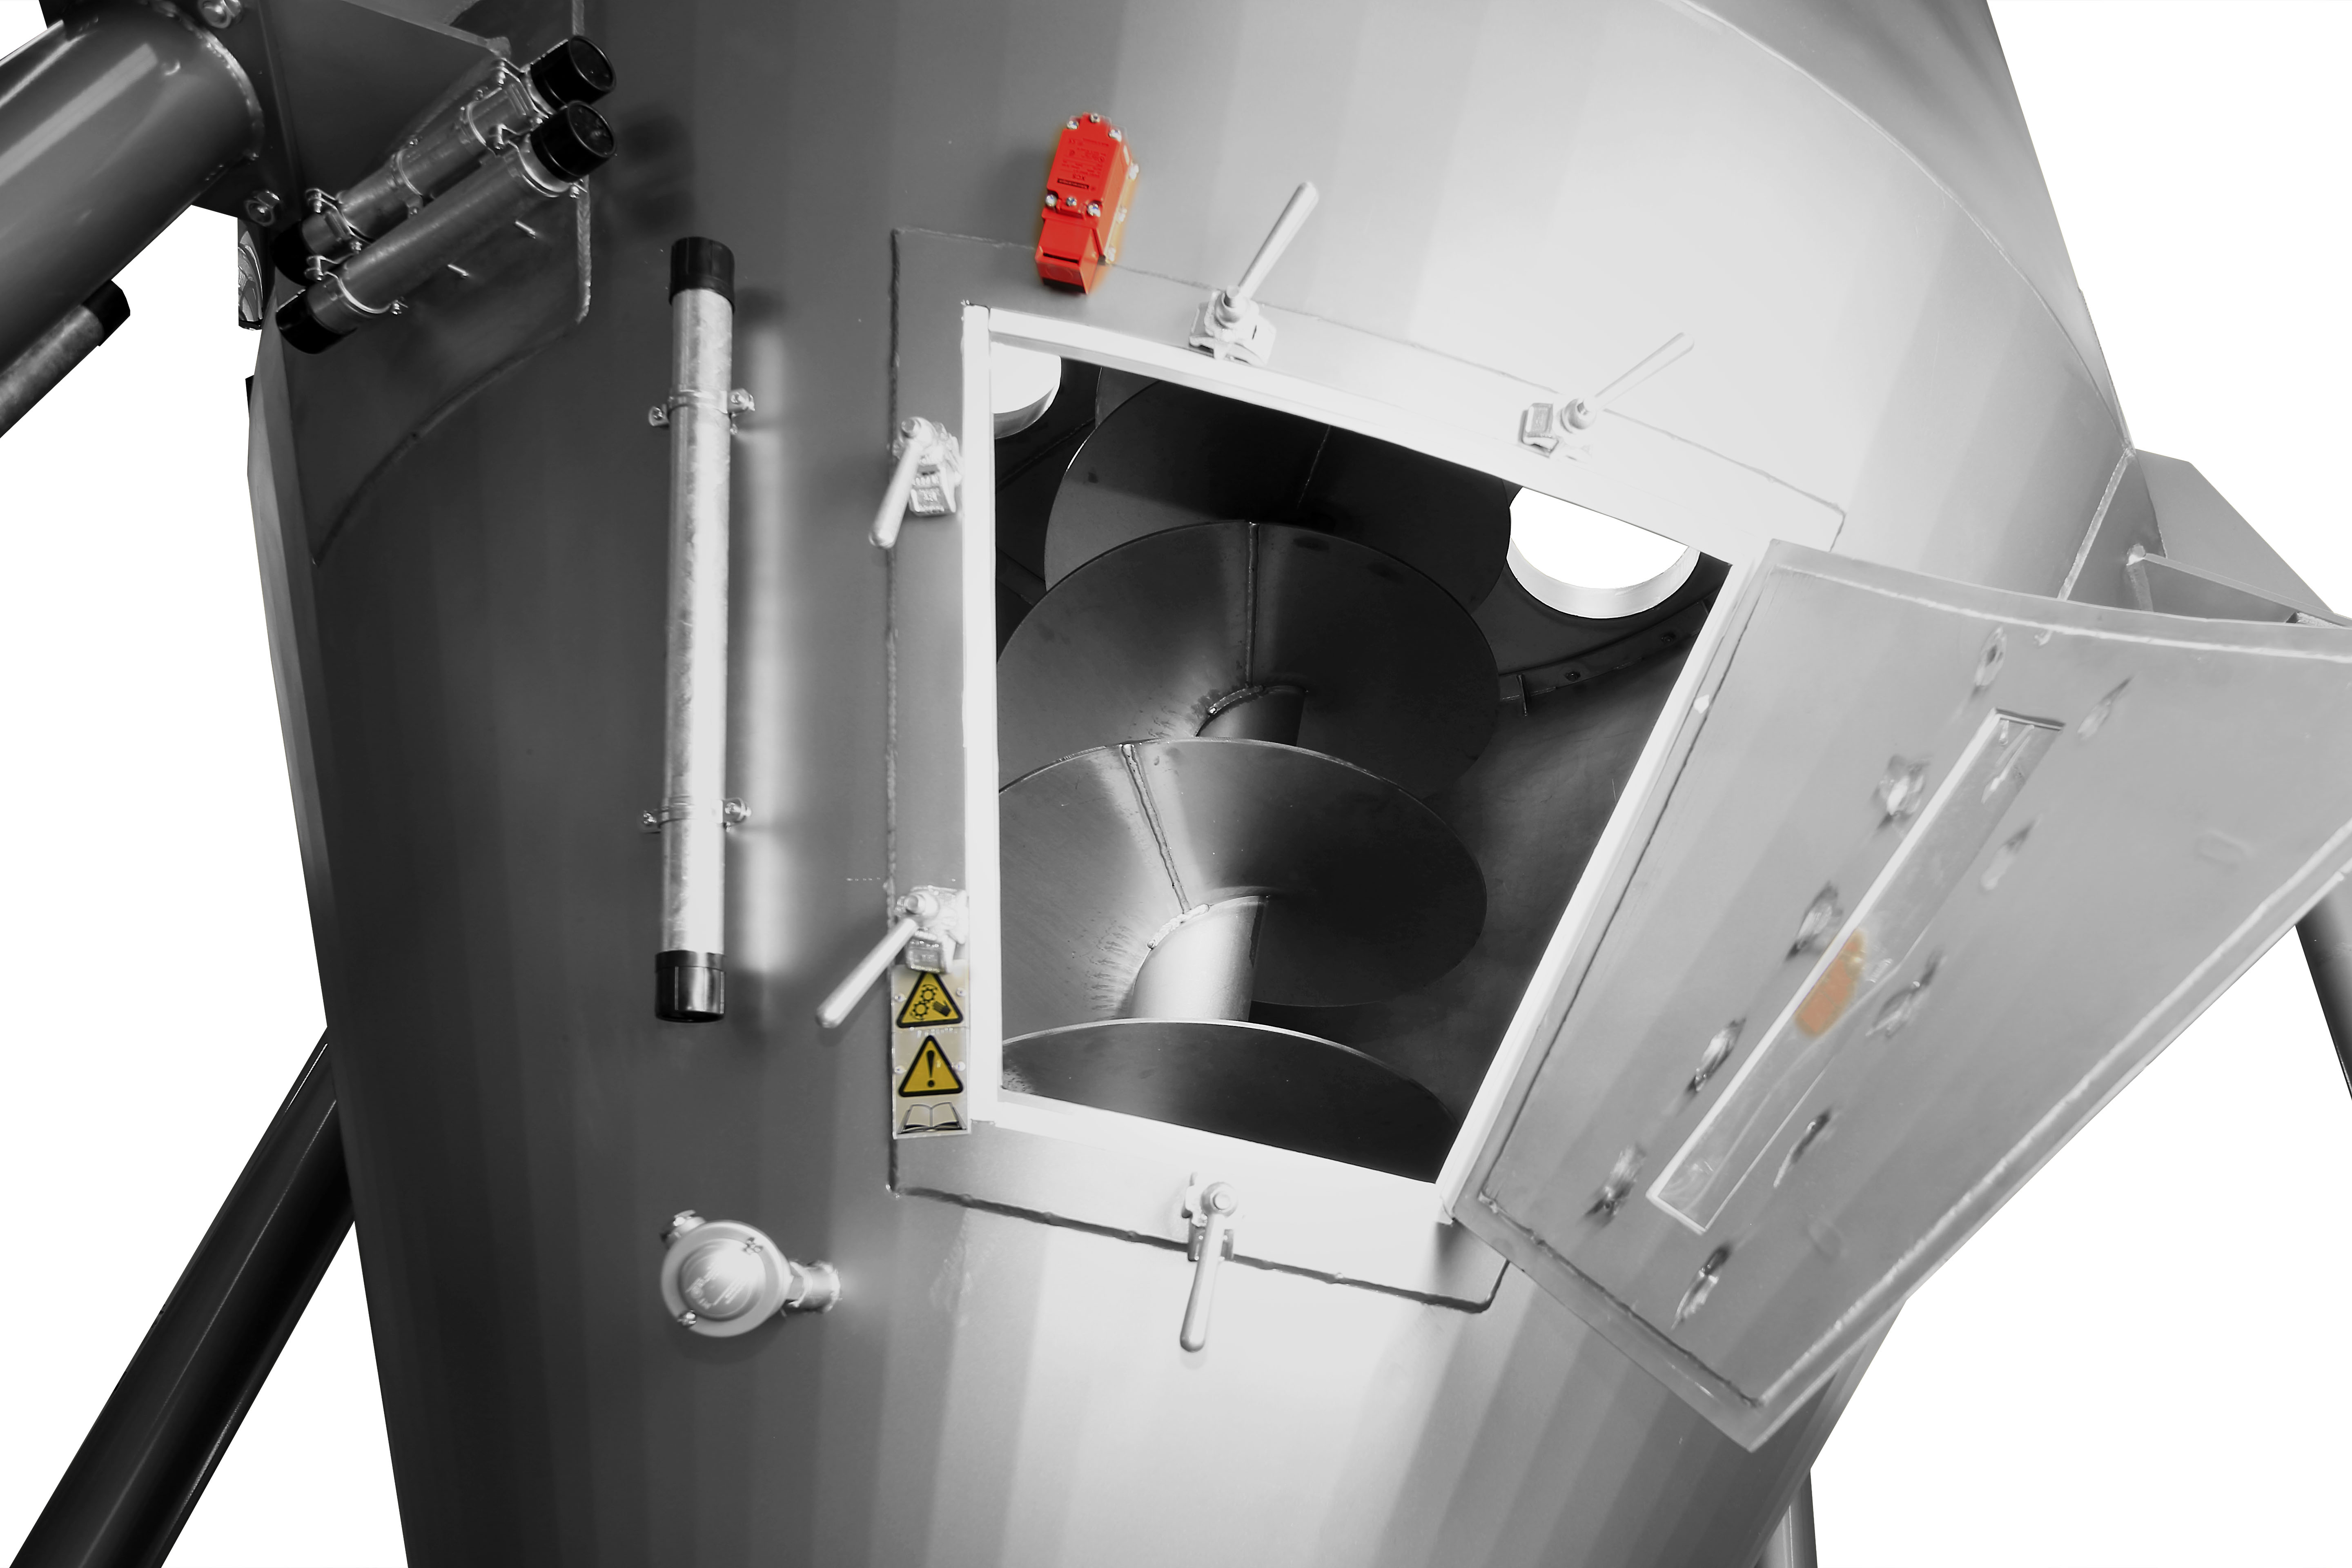 Mixer for food application